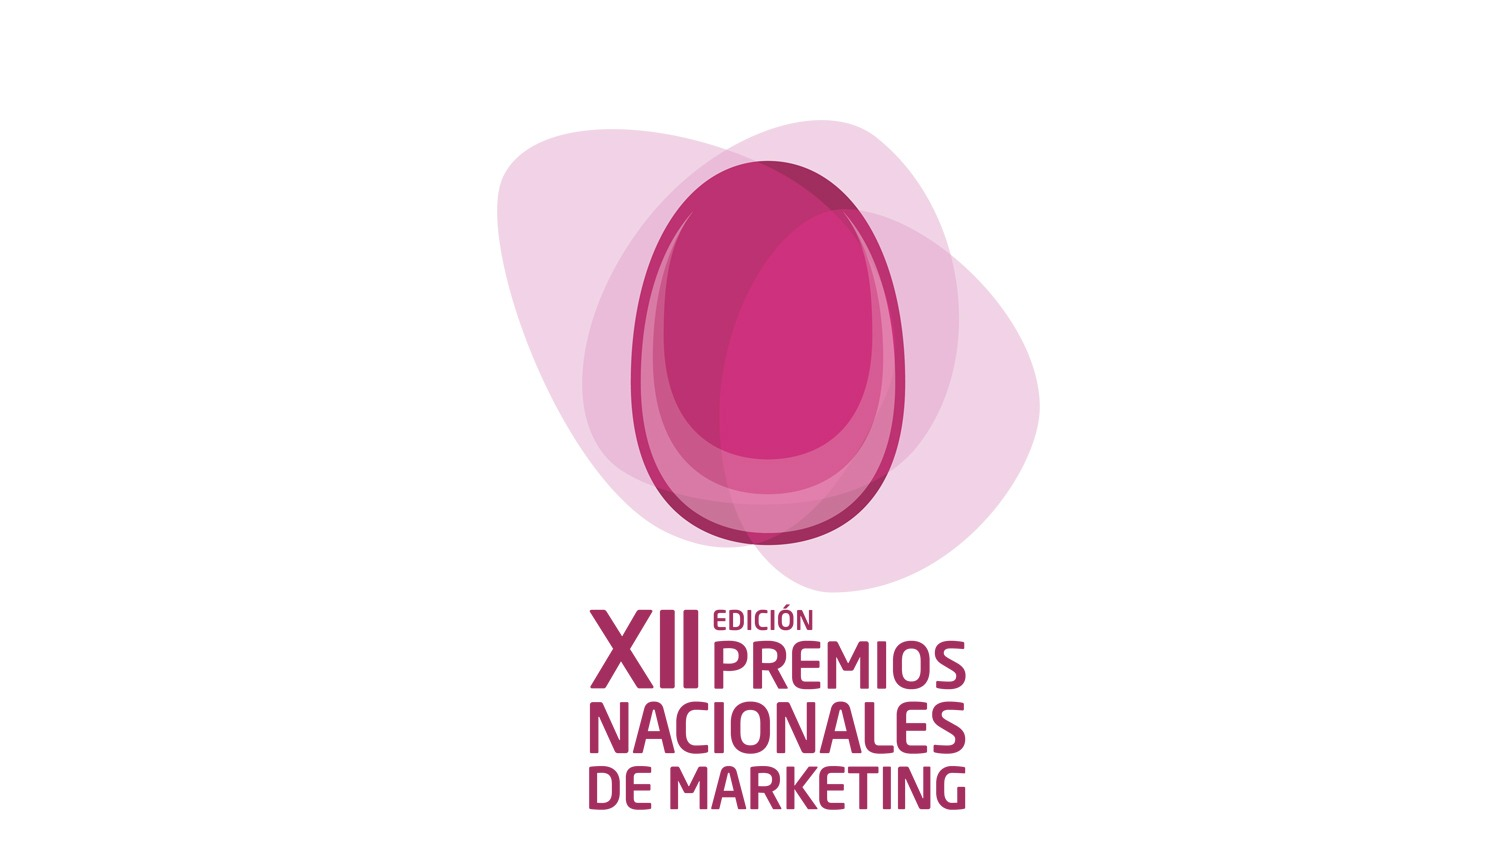 XI Premios Nacionales de Marketing